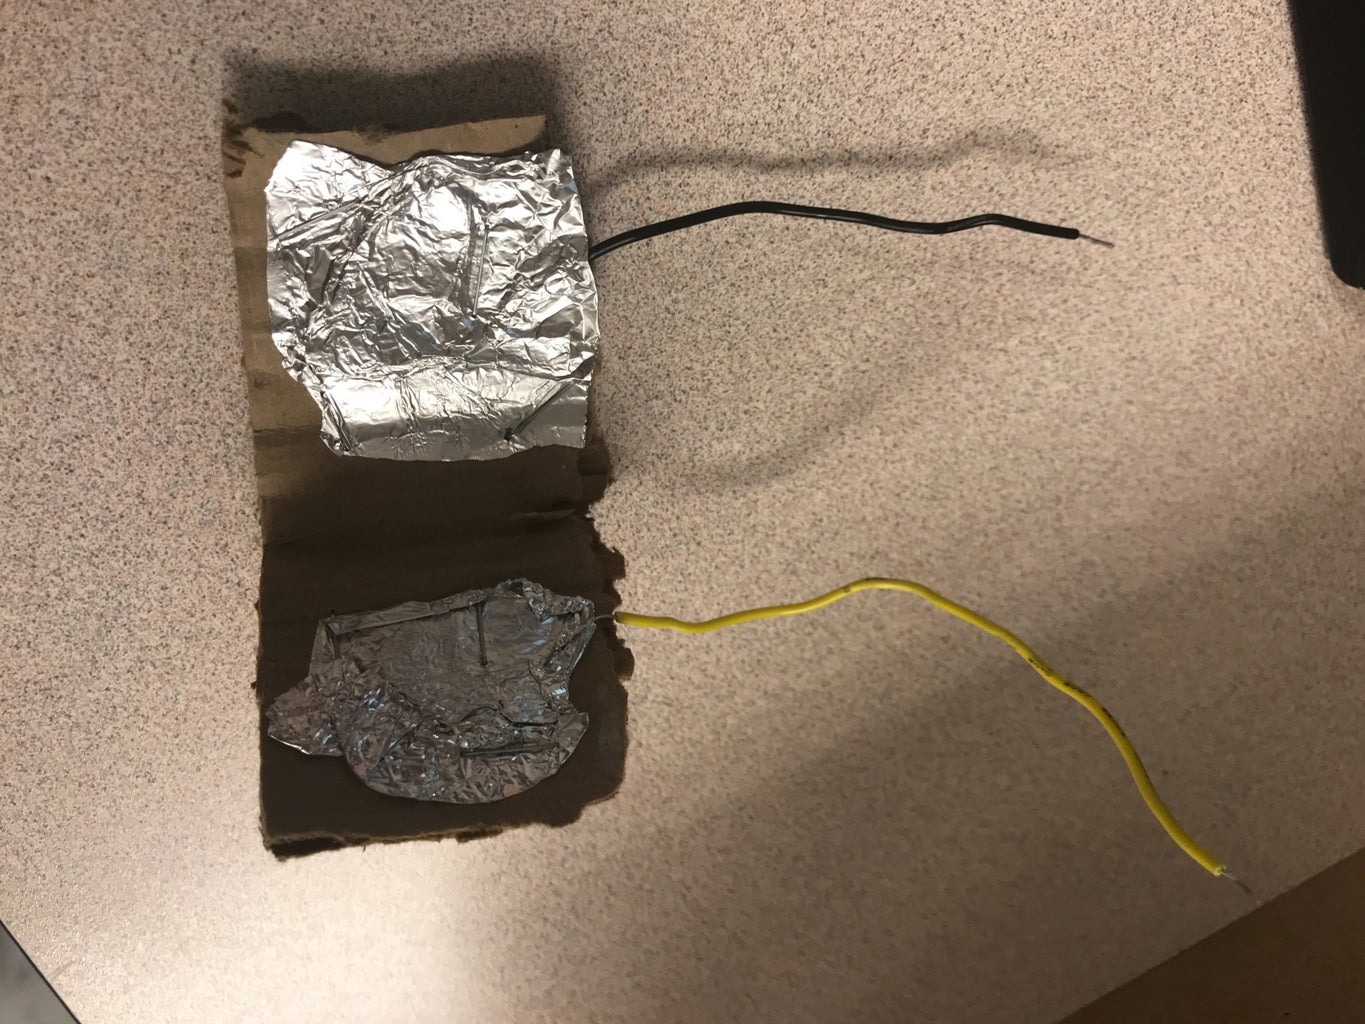 Connecting Wrapped Wires to Cardboard